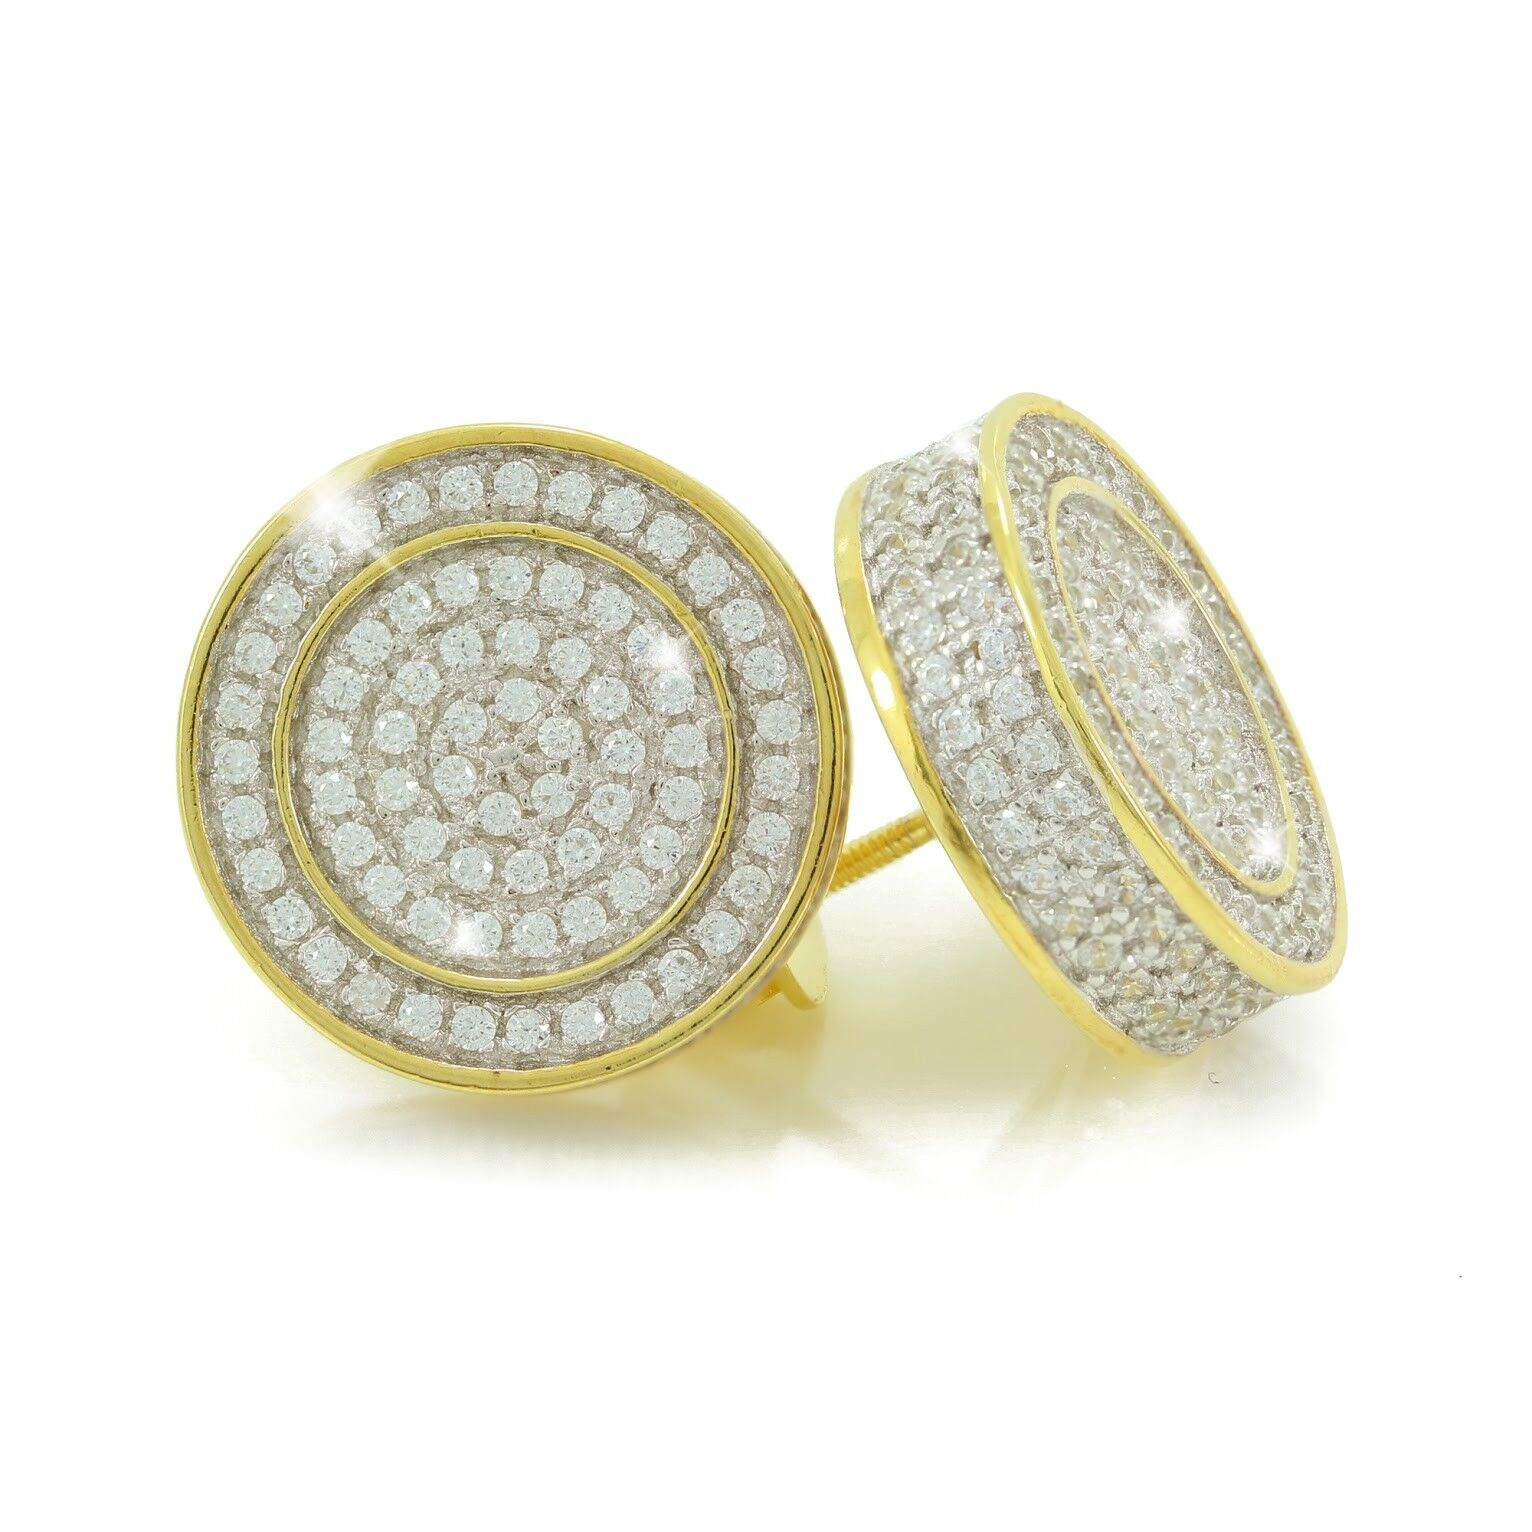 Details About Mens 14k Gold Plated Sterling Silver 1 2 Large Micropave Lab Diamonds Earrings